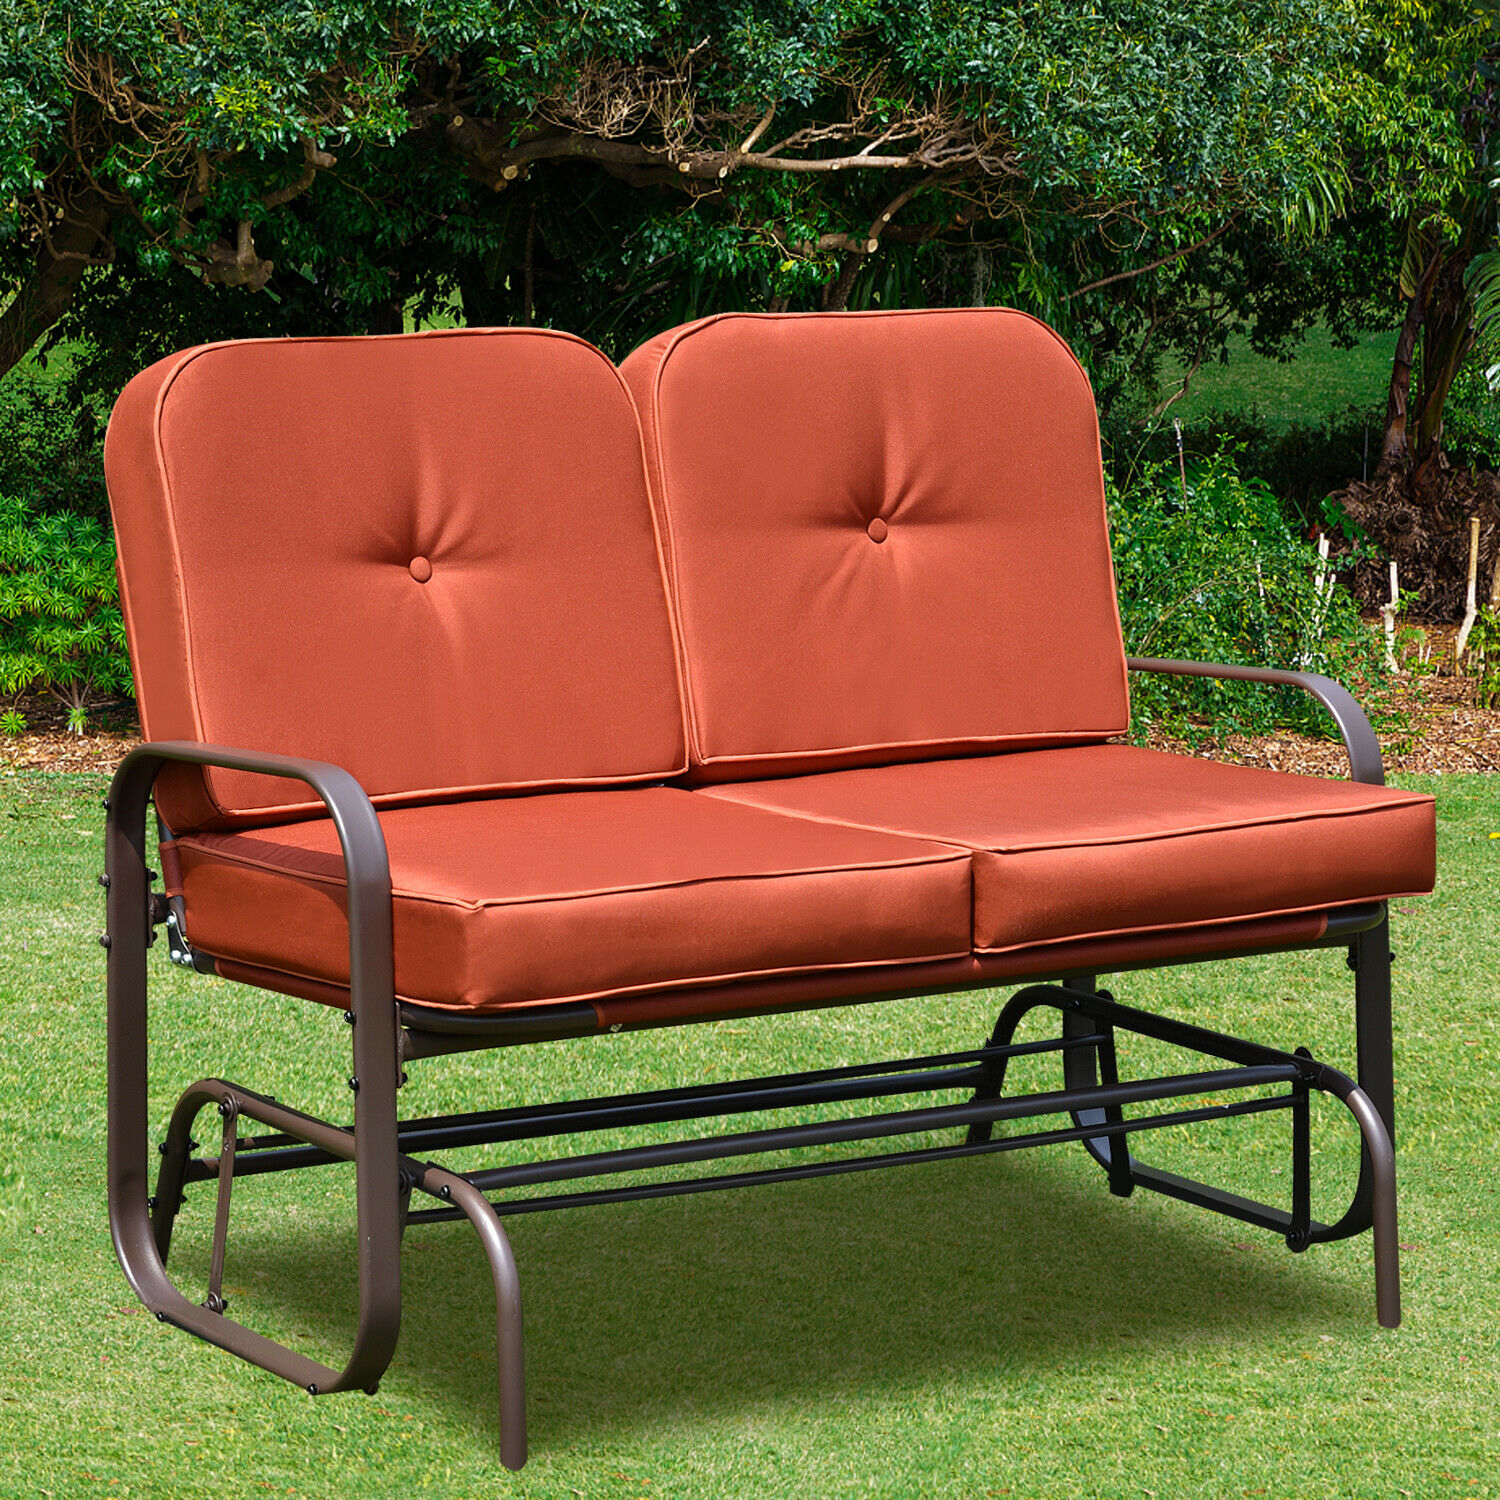 Patio Glider Bench Chair 2 Person Rocker Loveseat Outdoor Furniture W/ Cushions Pertaining To Loveseat Glider Benches With Cushions (View 15 of 25)